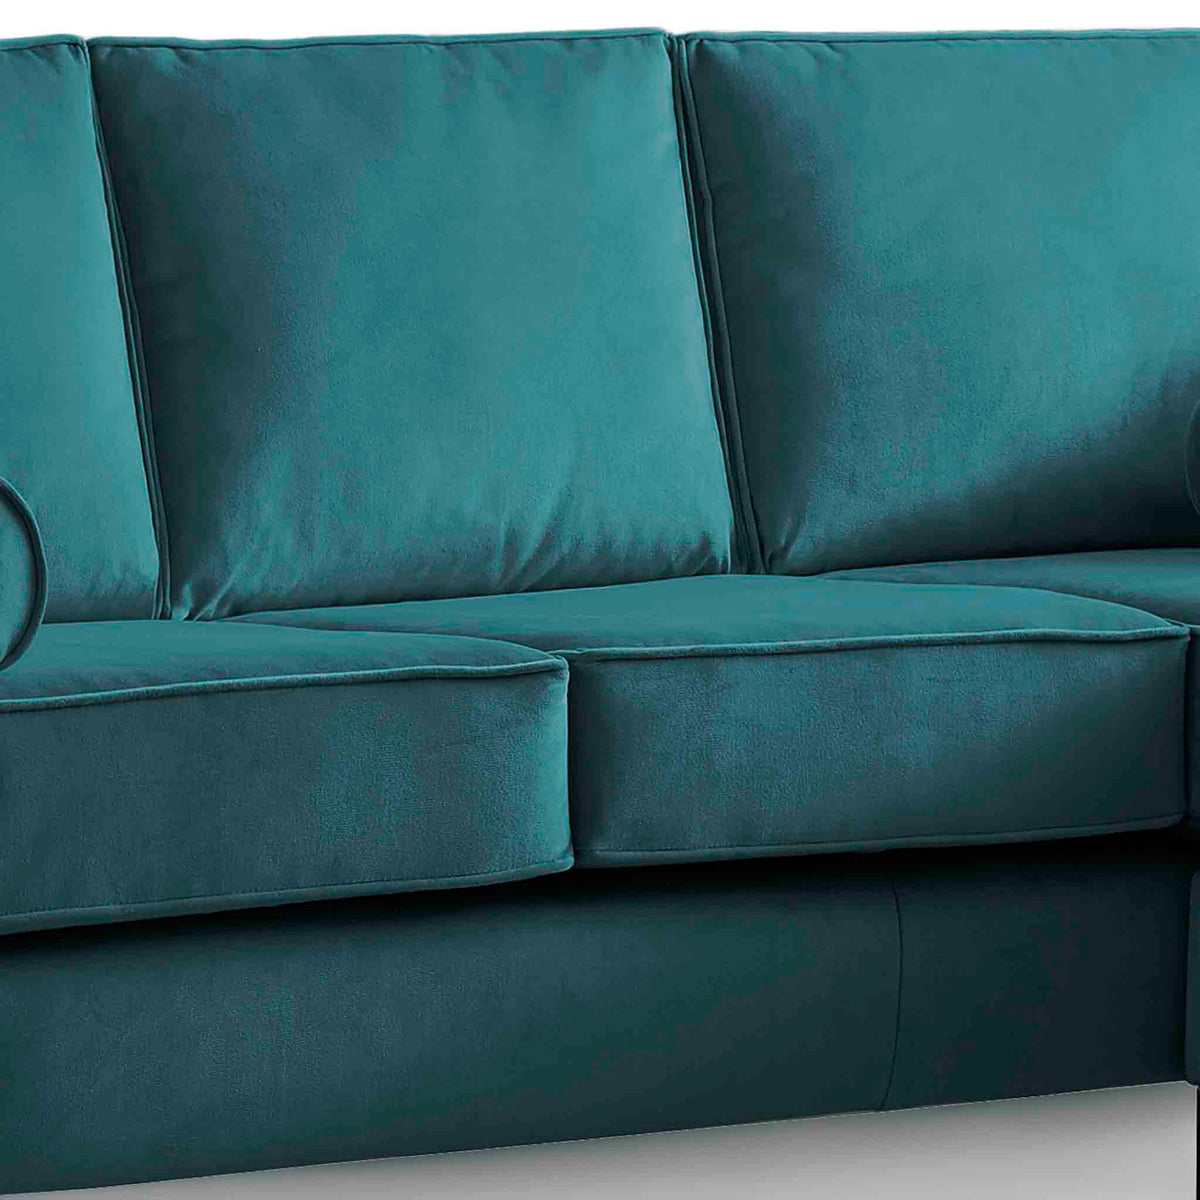 Ikon Reversible Peacock Chaise Corner Sofa - Close up of cushions on sofa